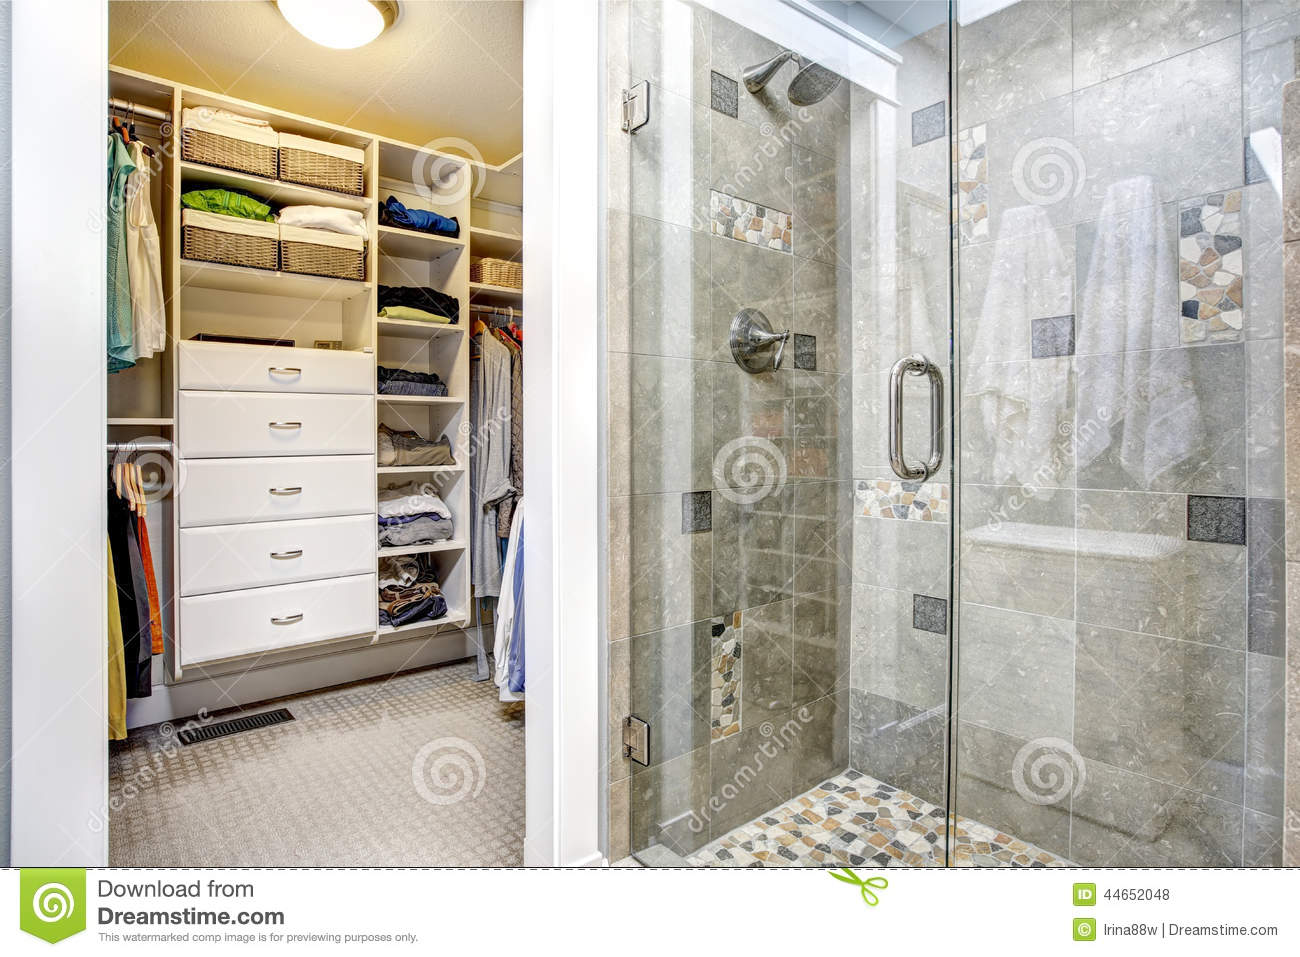 Royalty Free Stock Photo  Download Modern Bathroom Interior With Walk in  Closet. Modern Bathroom Interior With Walk in Closet Stock Photo   Image